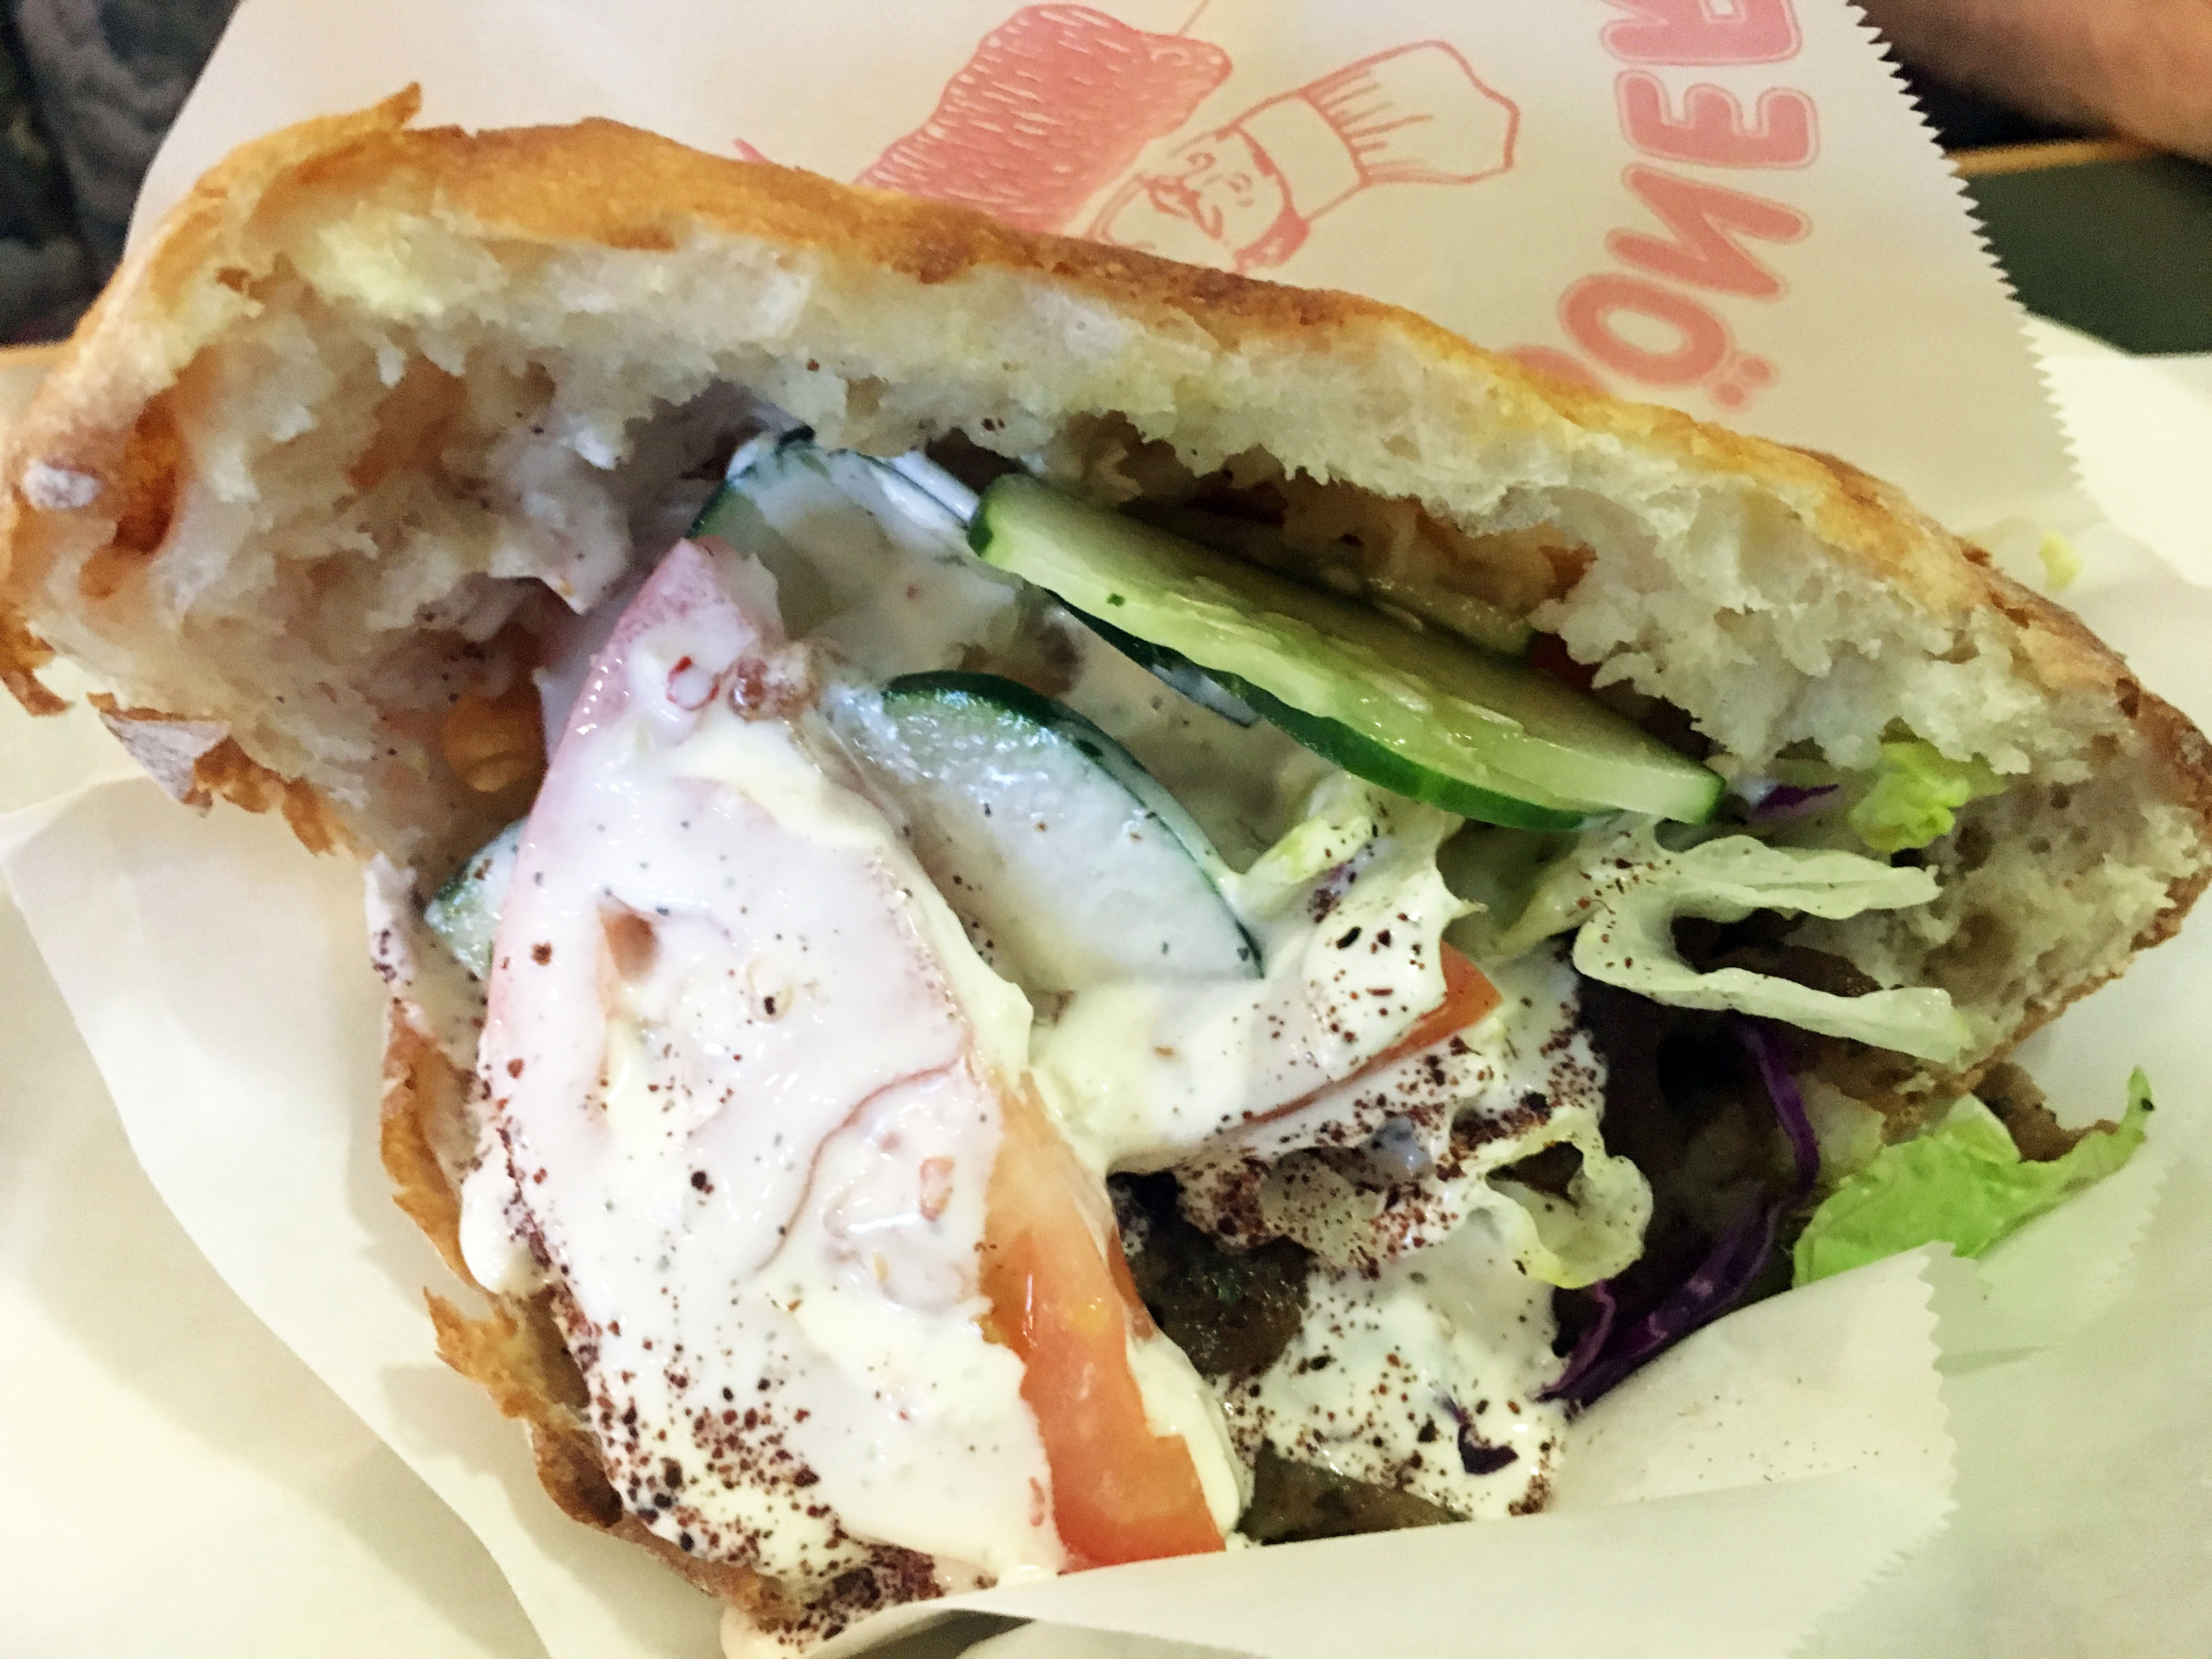 A close up of a döner sandwich with veggies and meat stuffed in a pocket of soft white bread and drenched with creamy white sauce.